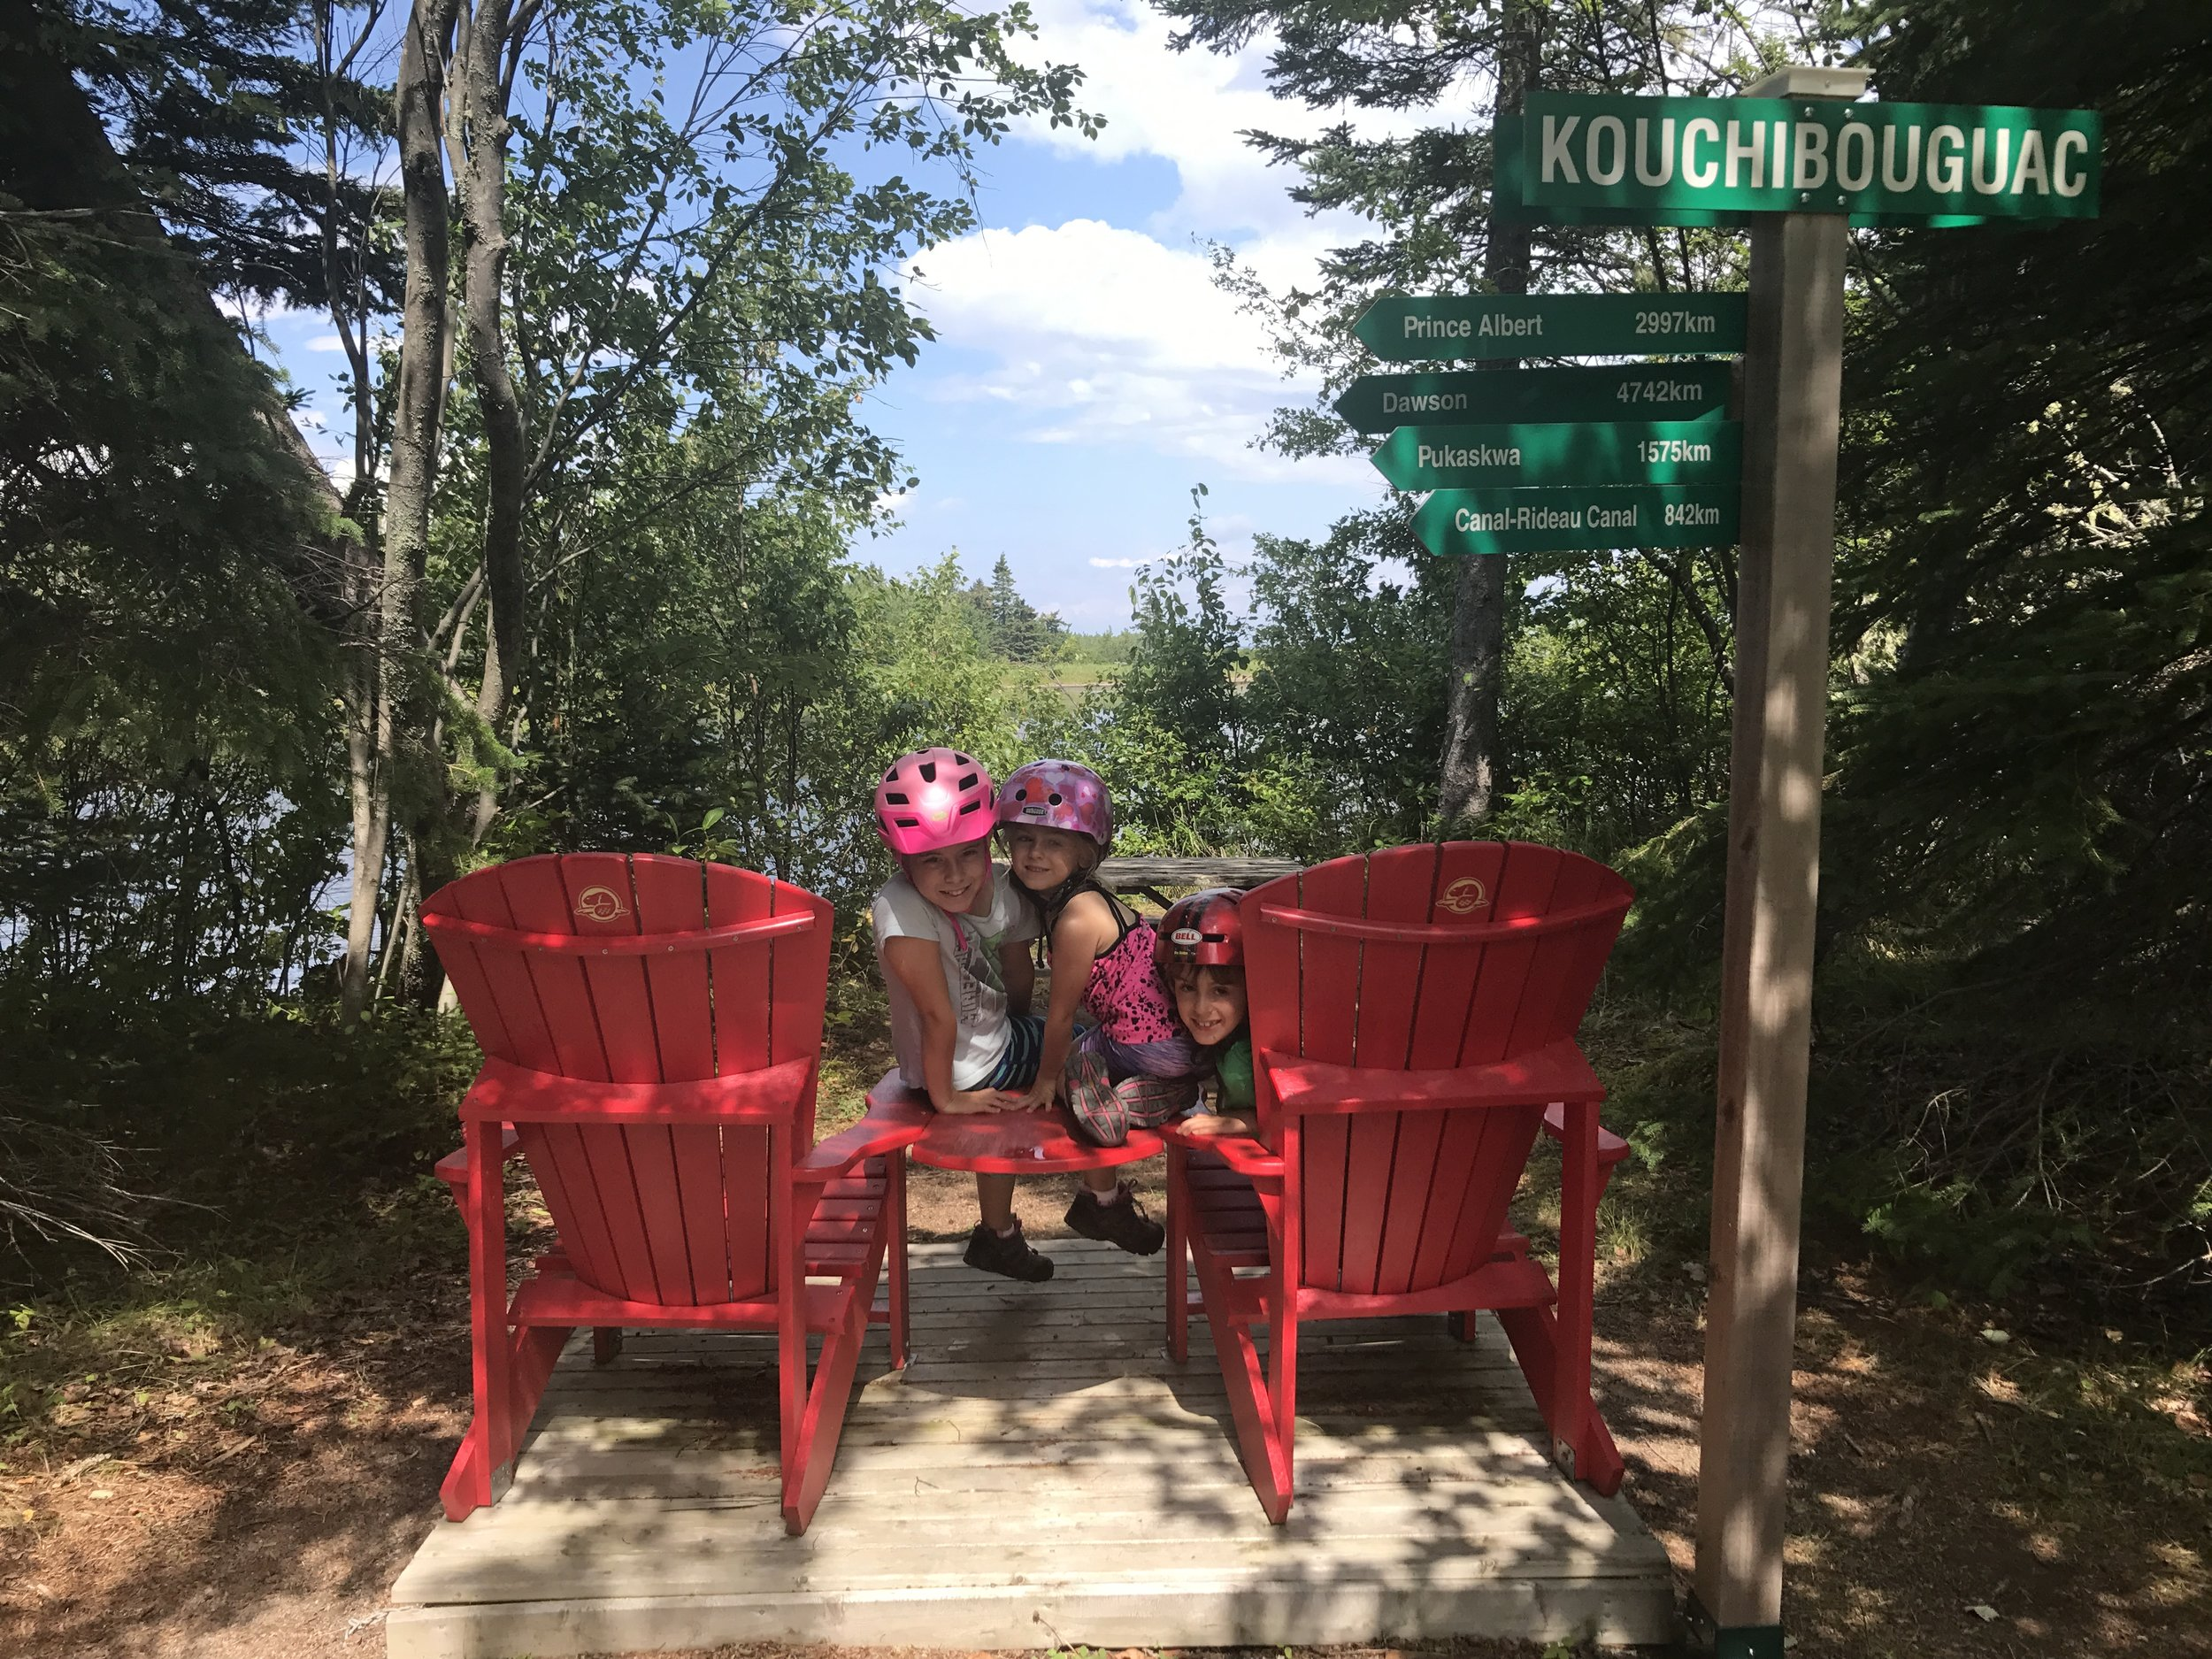 Although we didn't find chairs in the Cape-Breton Highlands following Fundy's many sightings, Kouchibouguac National Park in New Brunswick had several that got the kids amped to find the chairs again.